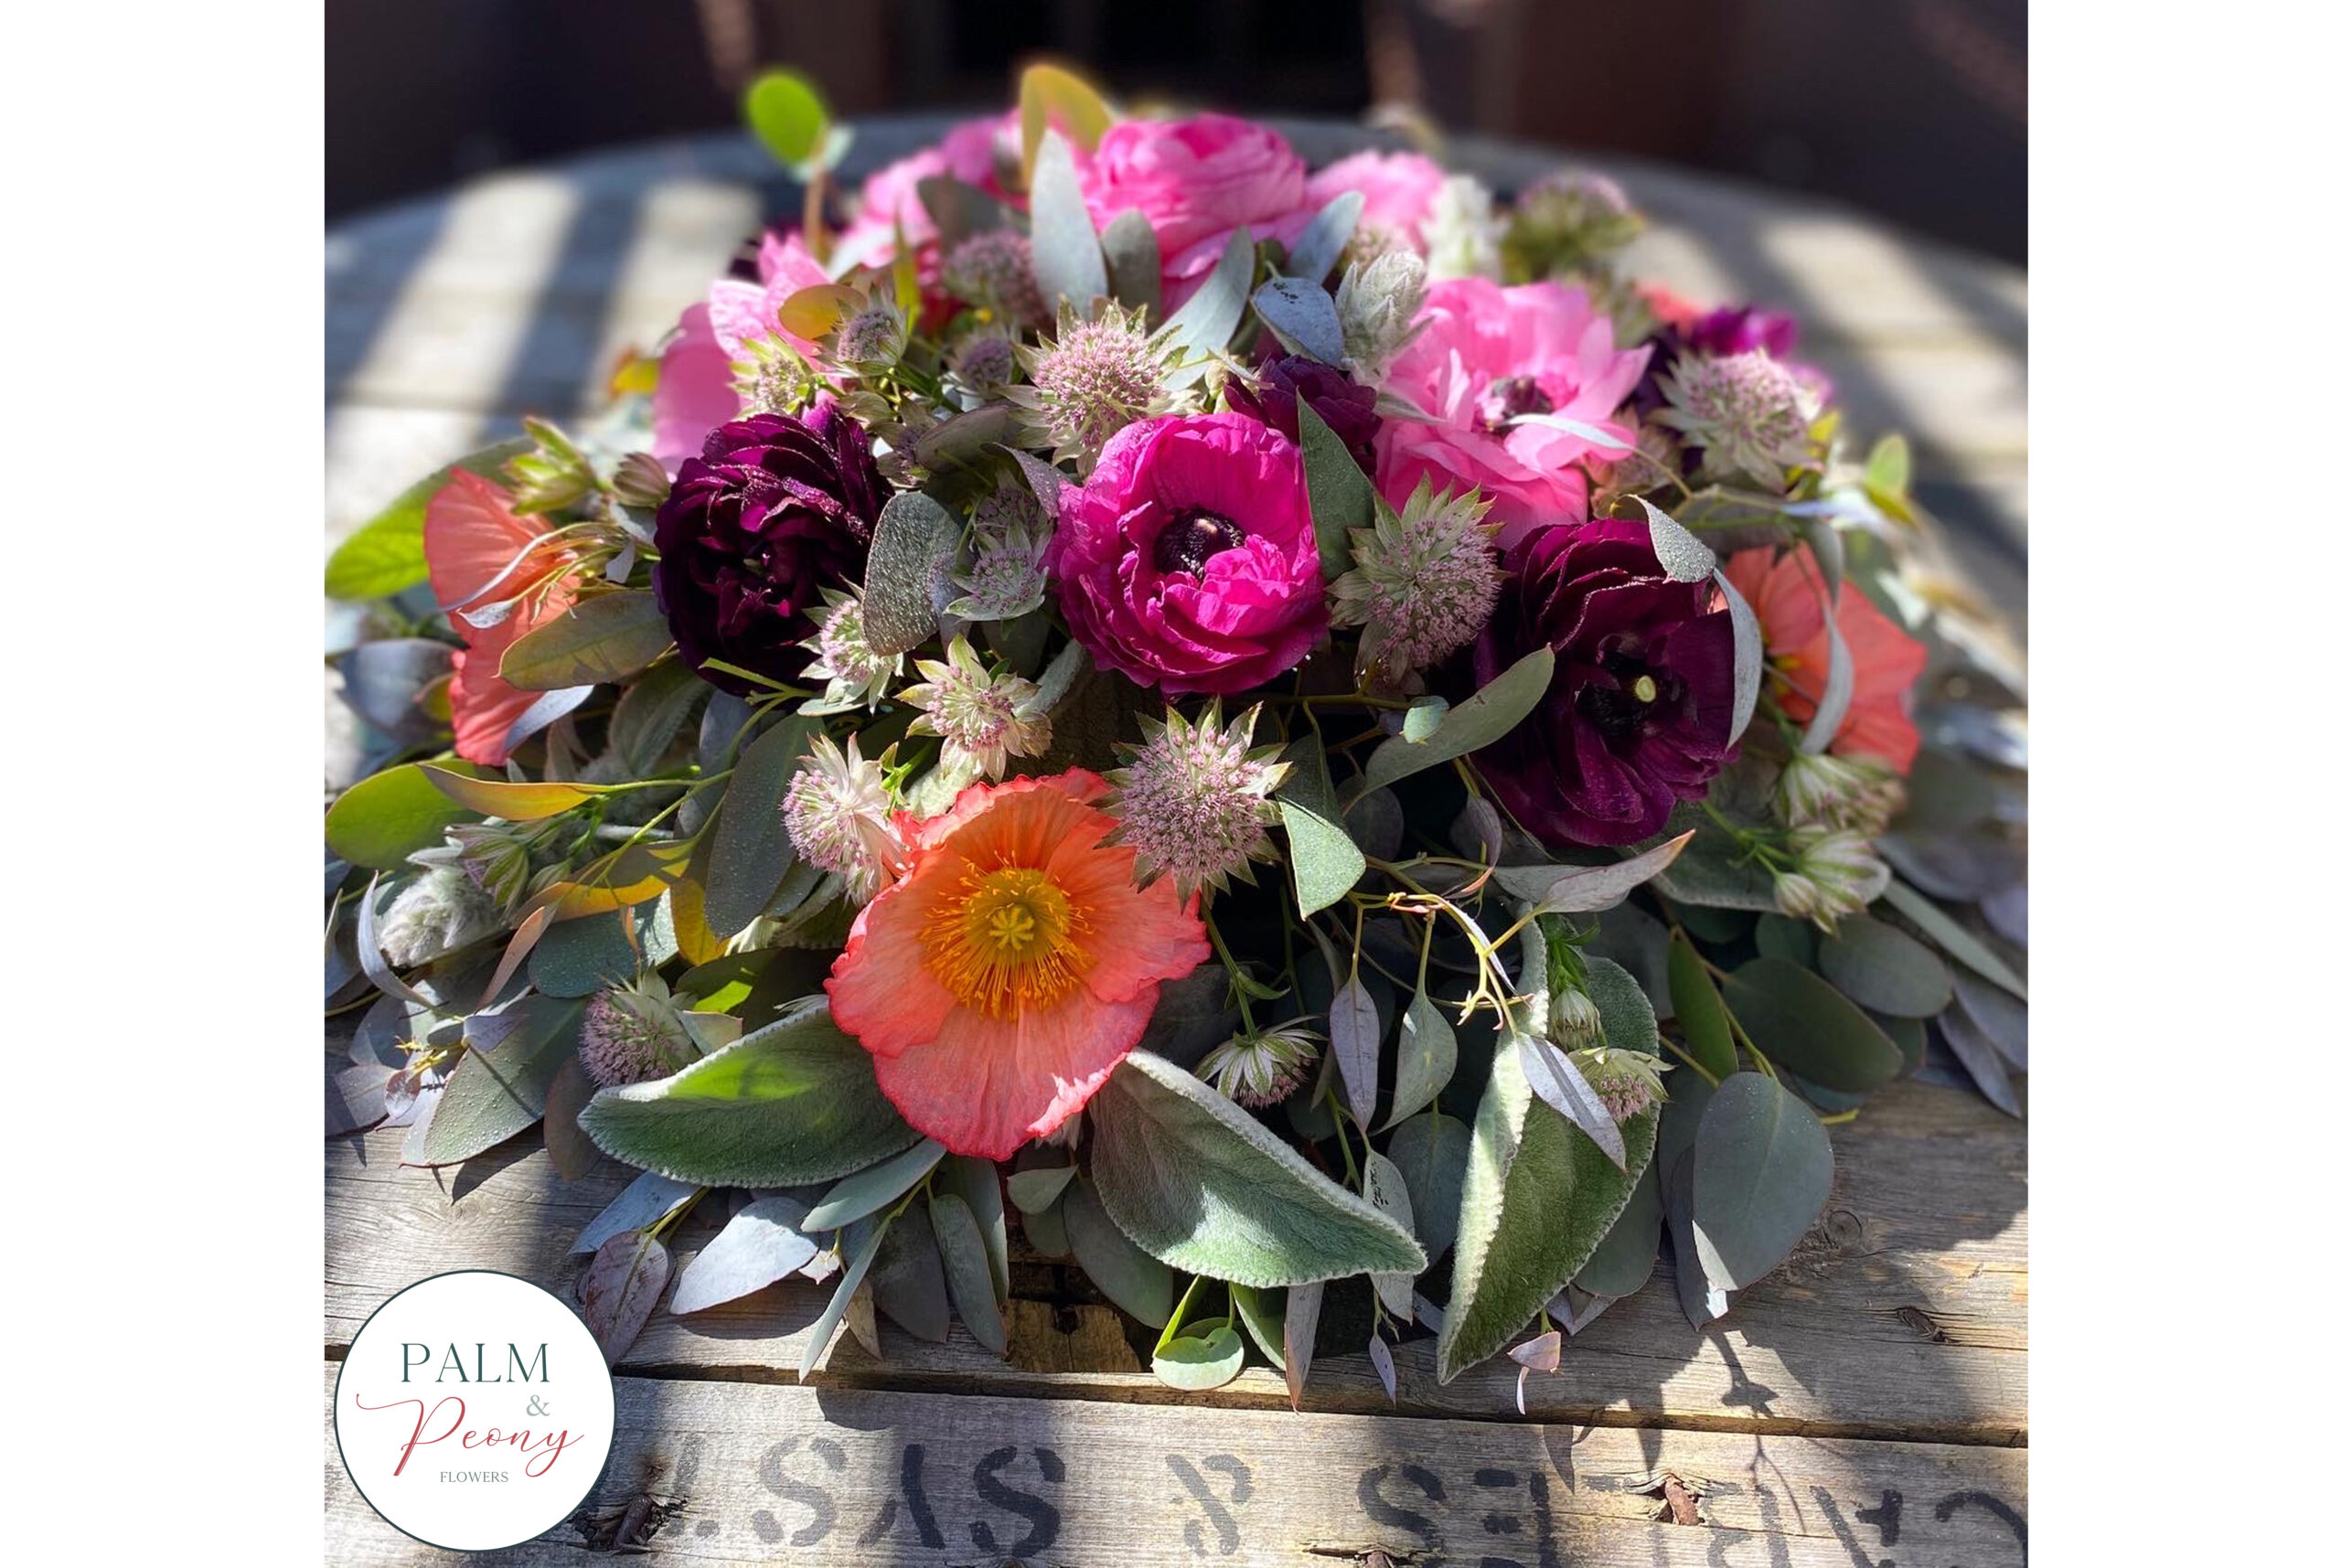 Funeral Flowers Posy